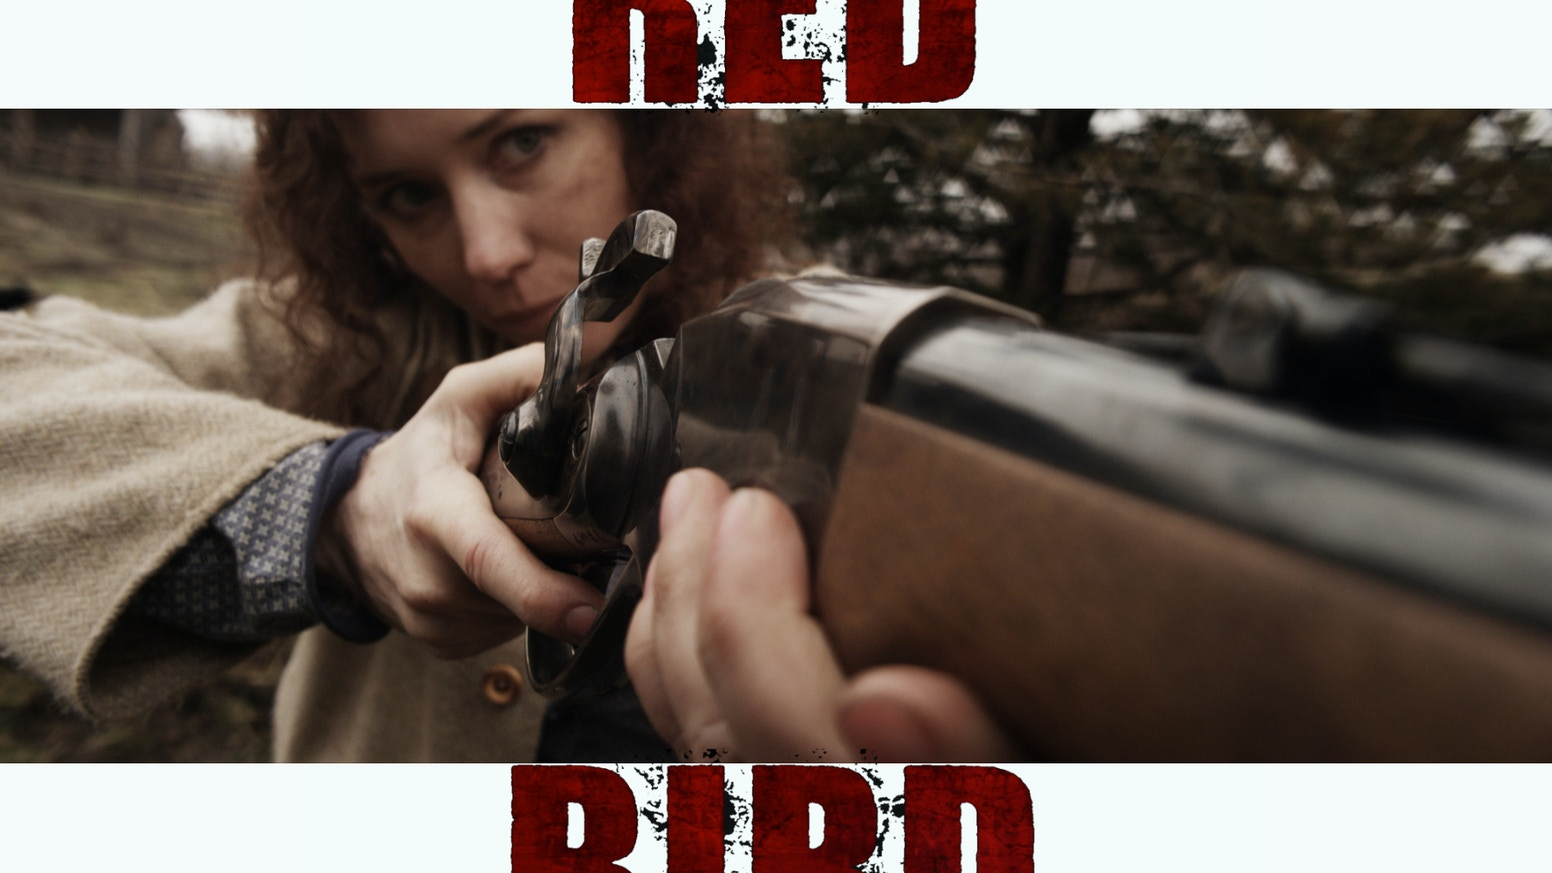 A badass woman gunfighter goes on a bloody quest for revenge against the men who killed her son...